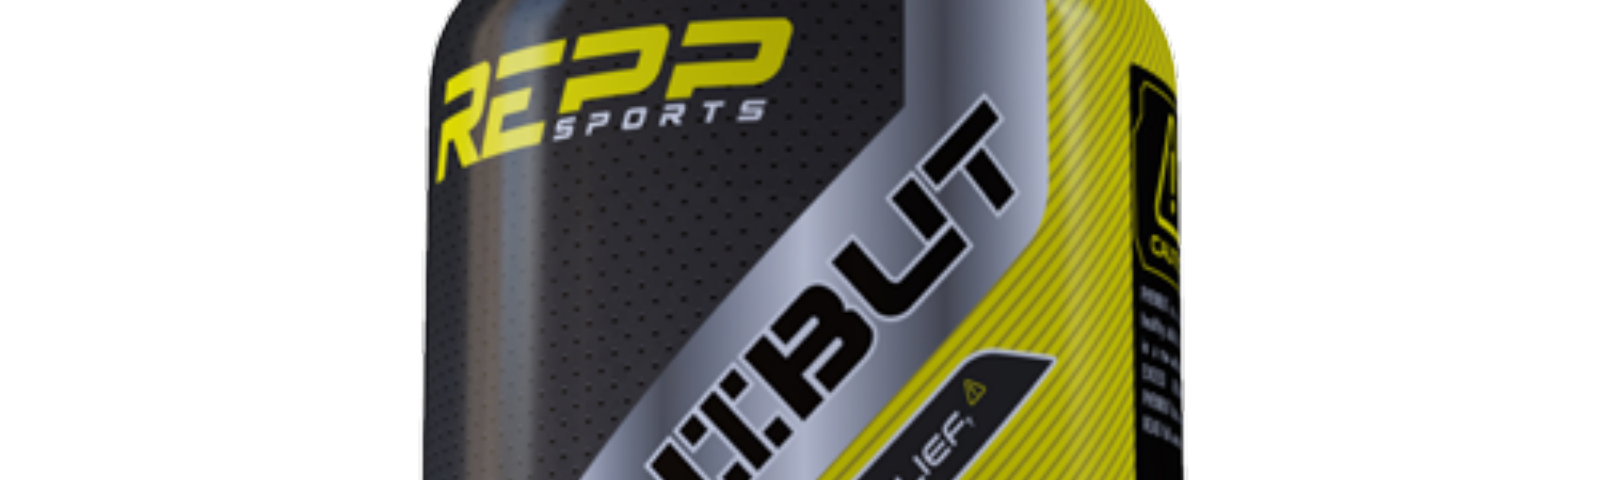 repp sports phenibut overall rating